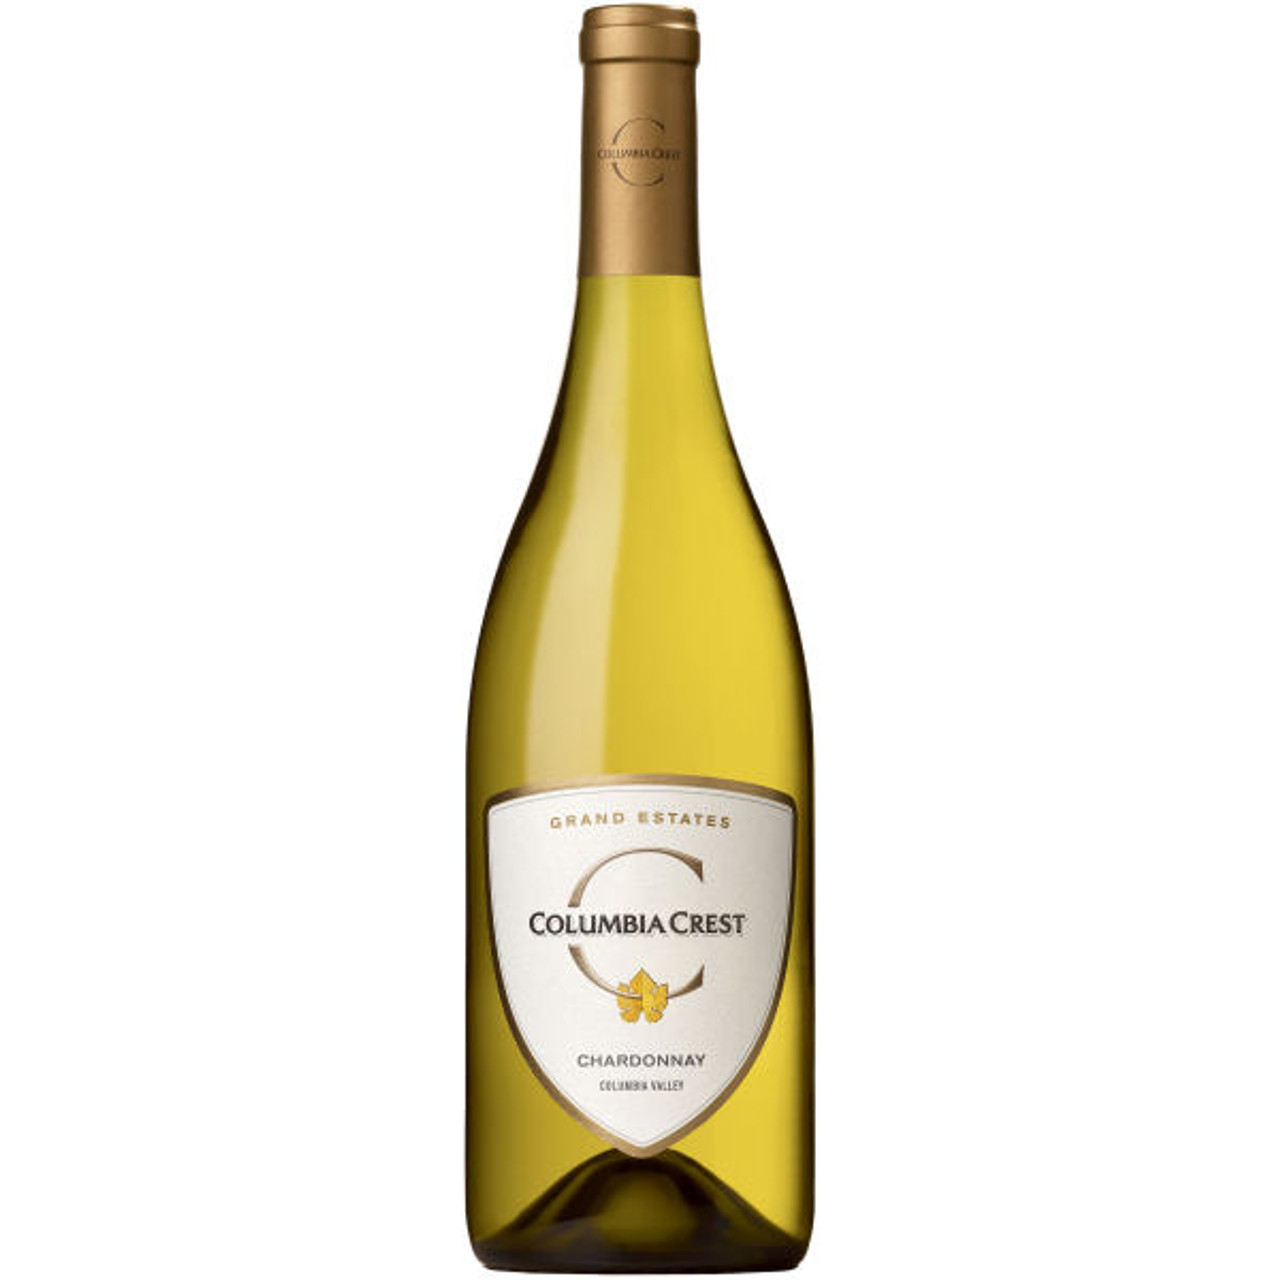 Columbia Crest Grand Estates Chardonnay Washington